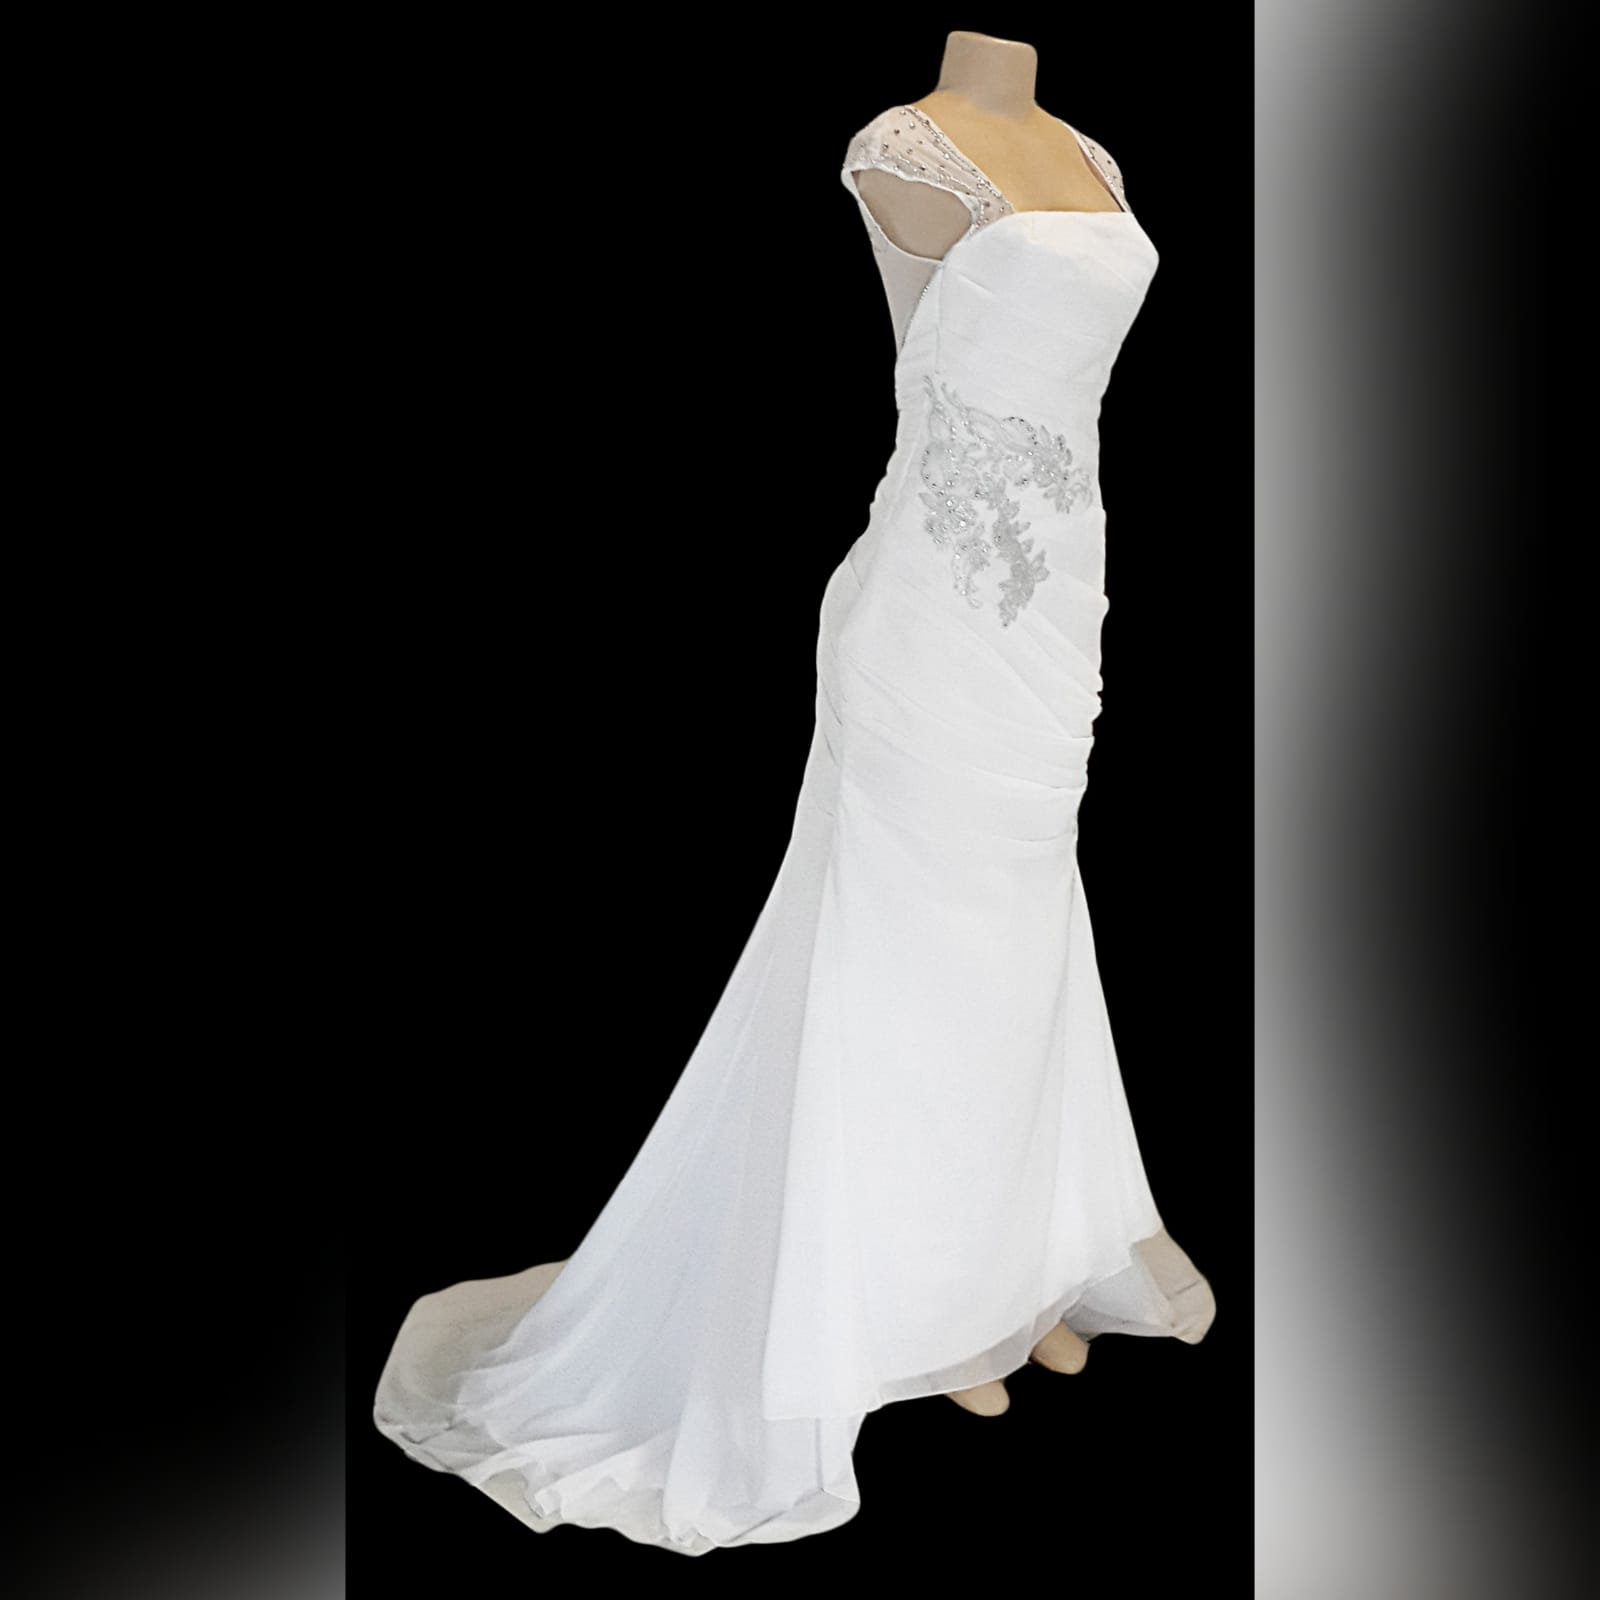 White chiffon pleated wedding dress 7 white chiffon pleated wedding dress with sheer shoulders and back detailed with beads. With white and silver lace detail on the hip and thigh. With a train and covered buttons.